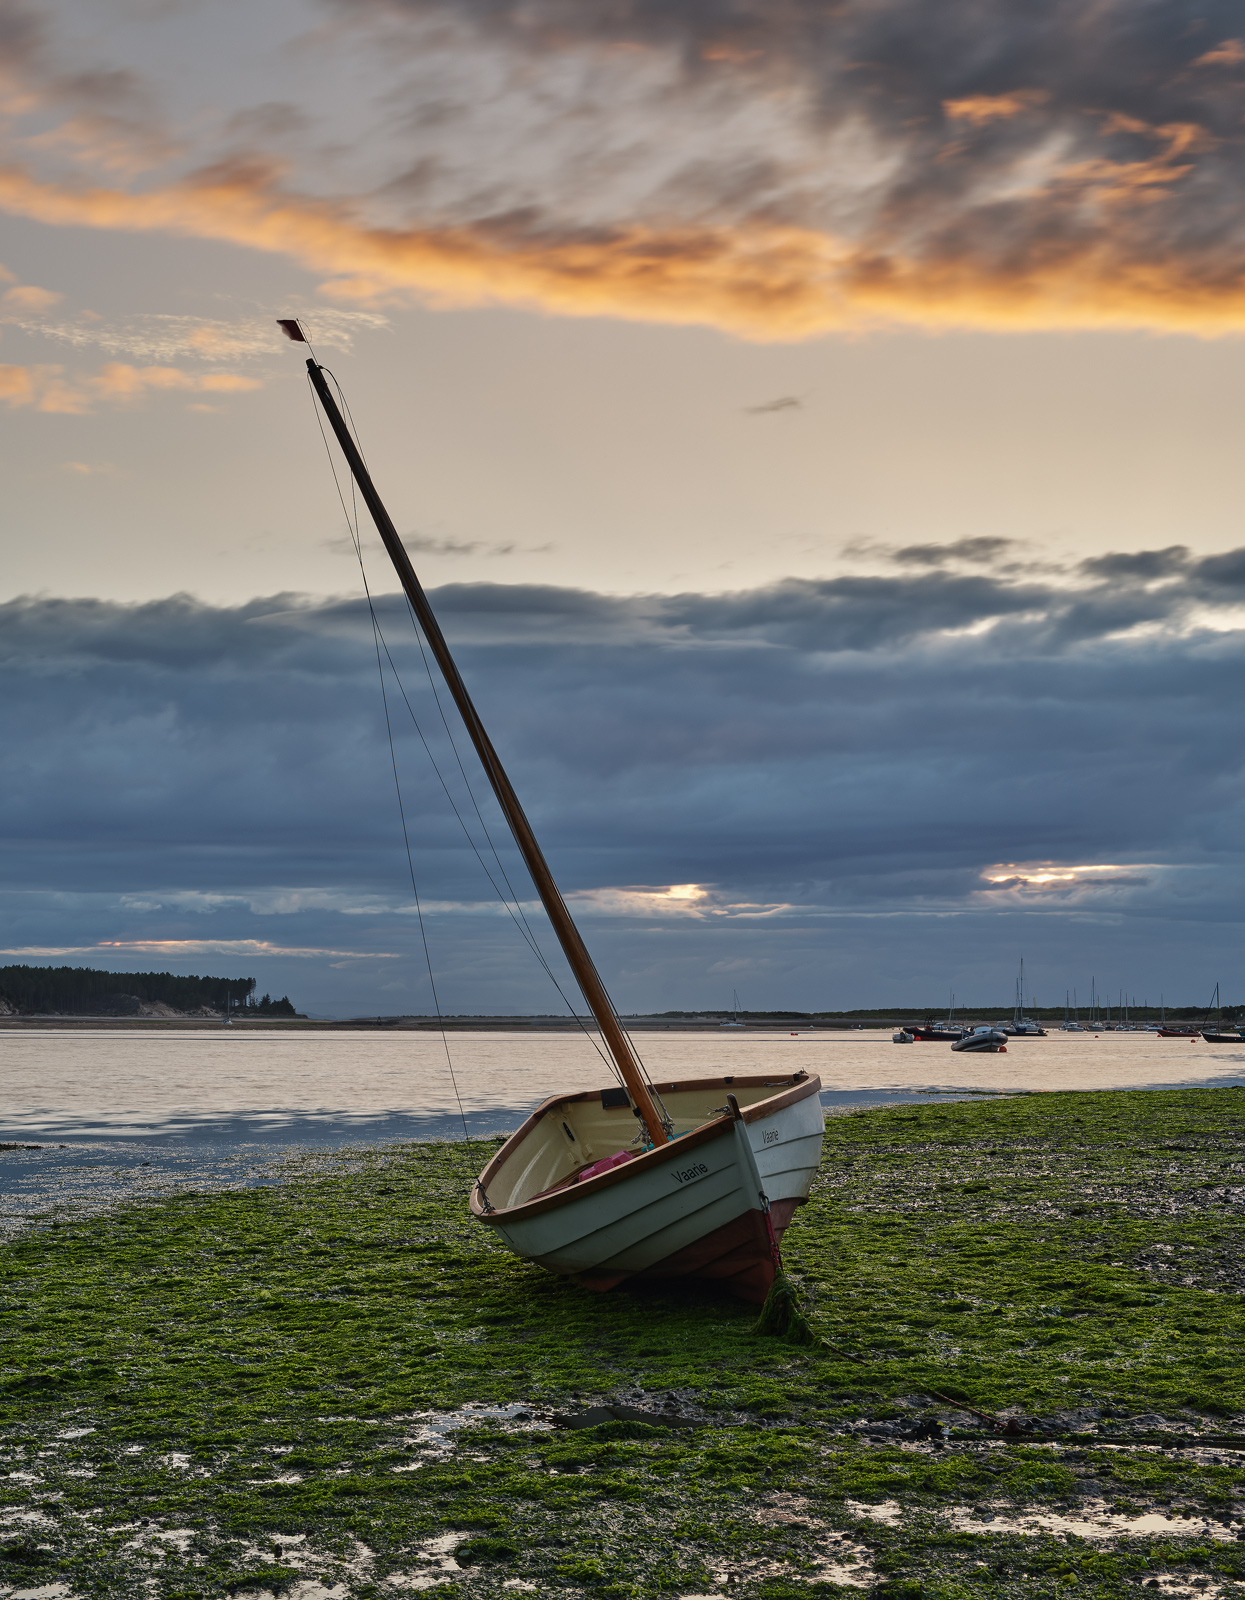 Vaarie an interesting wee wooden dinghy beached on the estuary at Findhorn on the Moray coast at sunset.